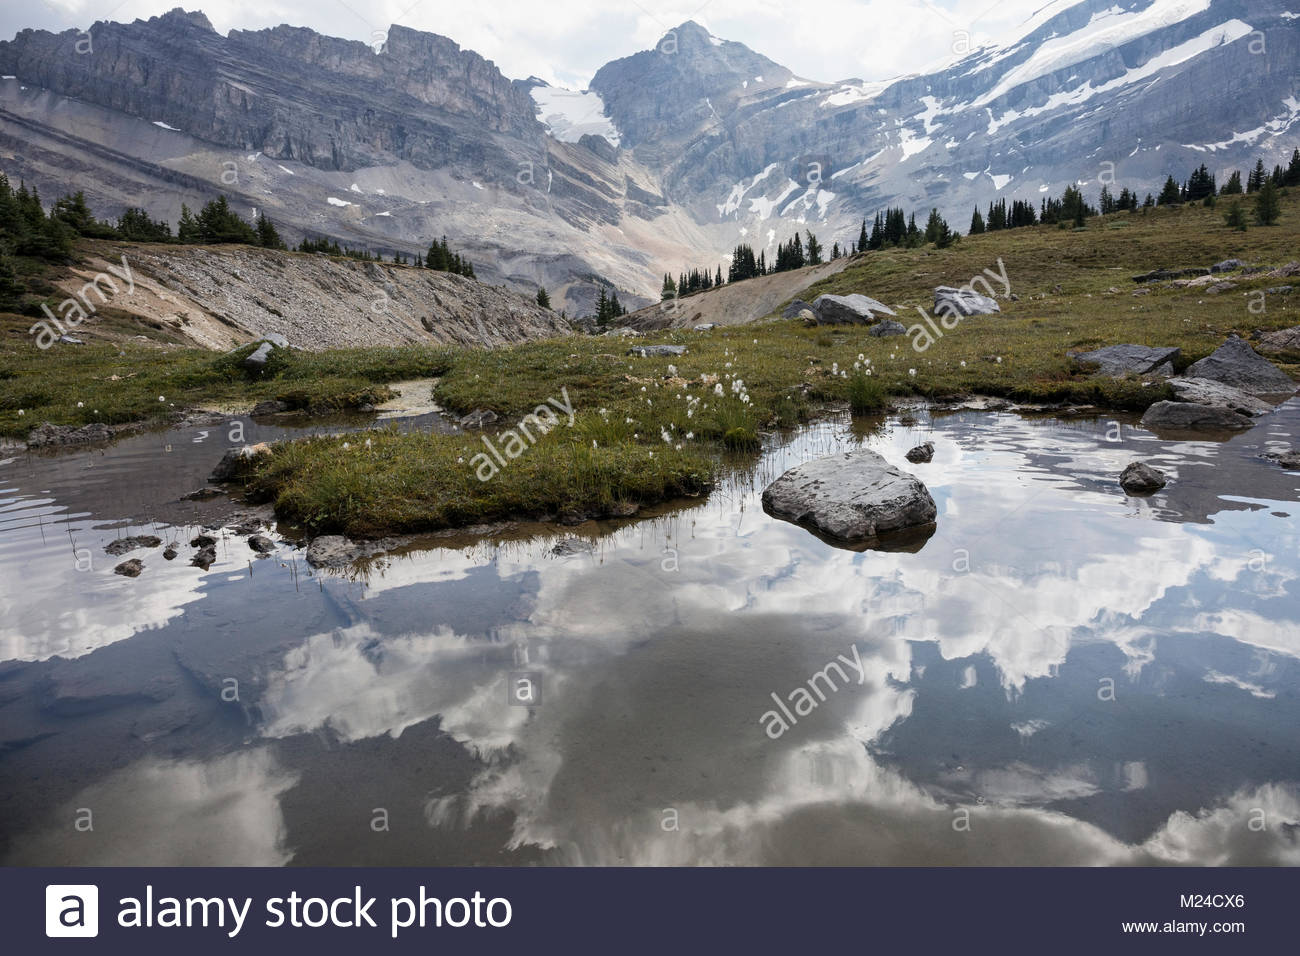 Reflection of clouds in tranquil, placid lake below mountains - Stock Image